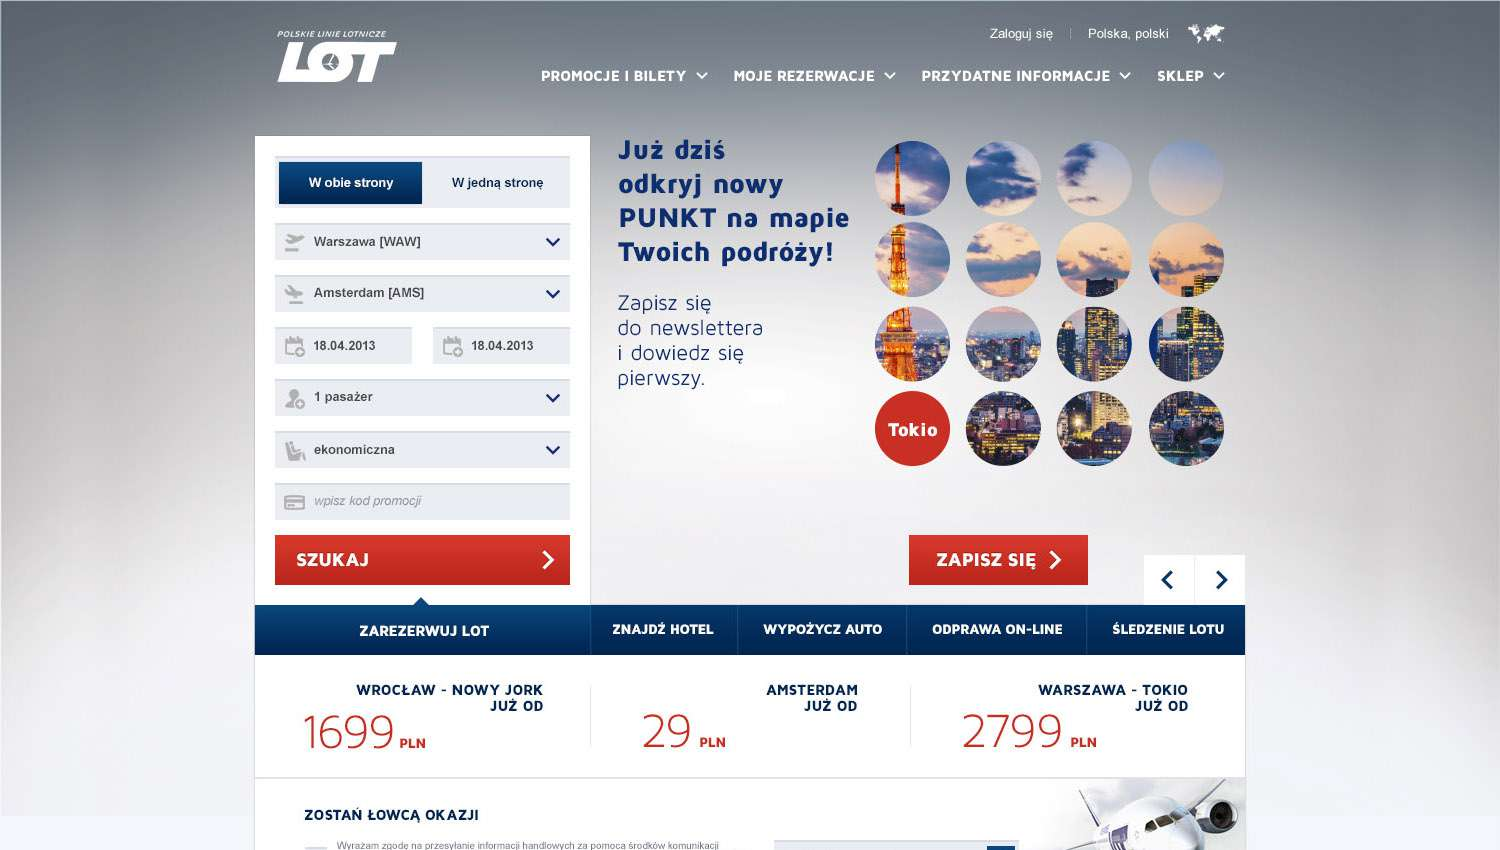 Eskadra - LOT gets to the point! - LOT Polish Airlines